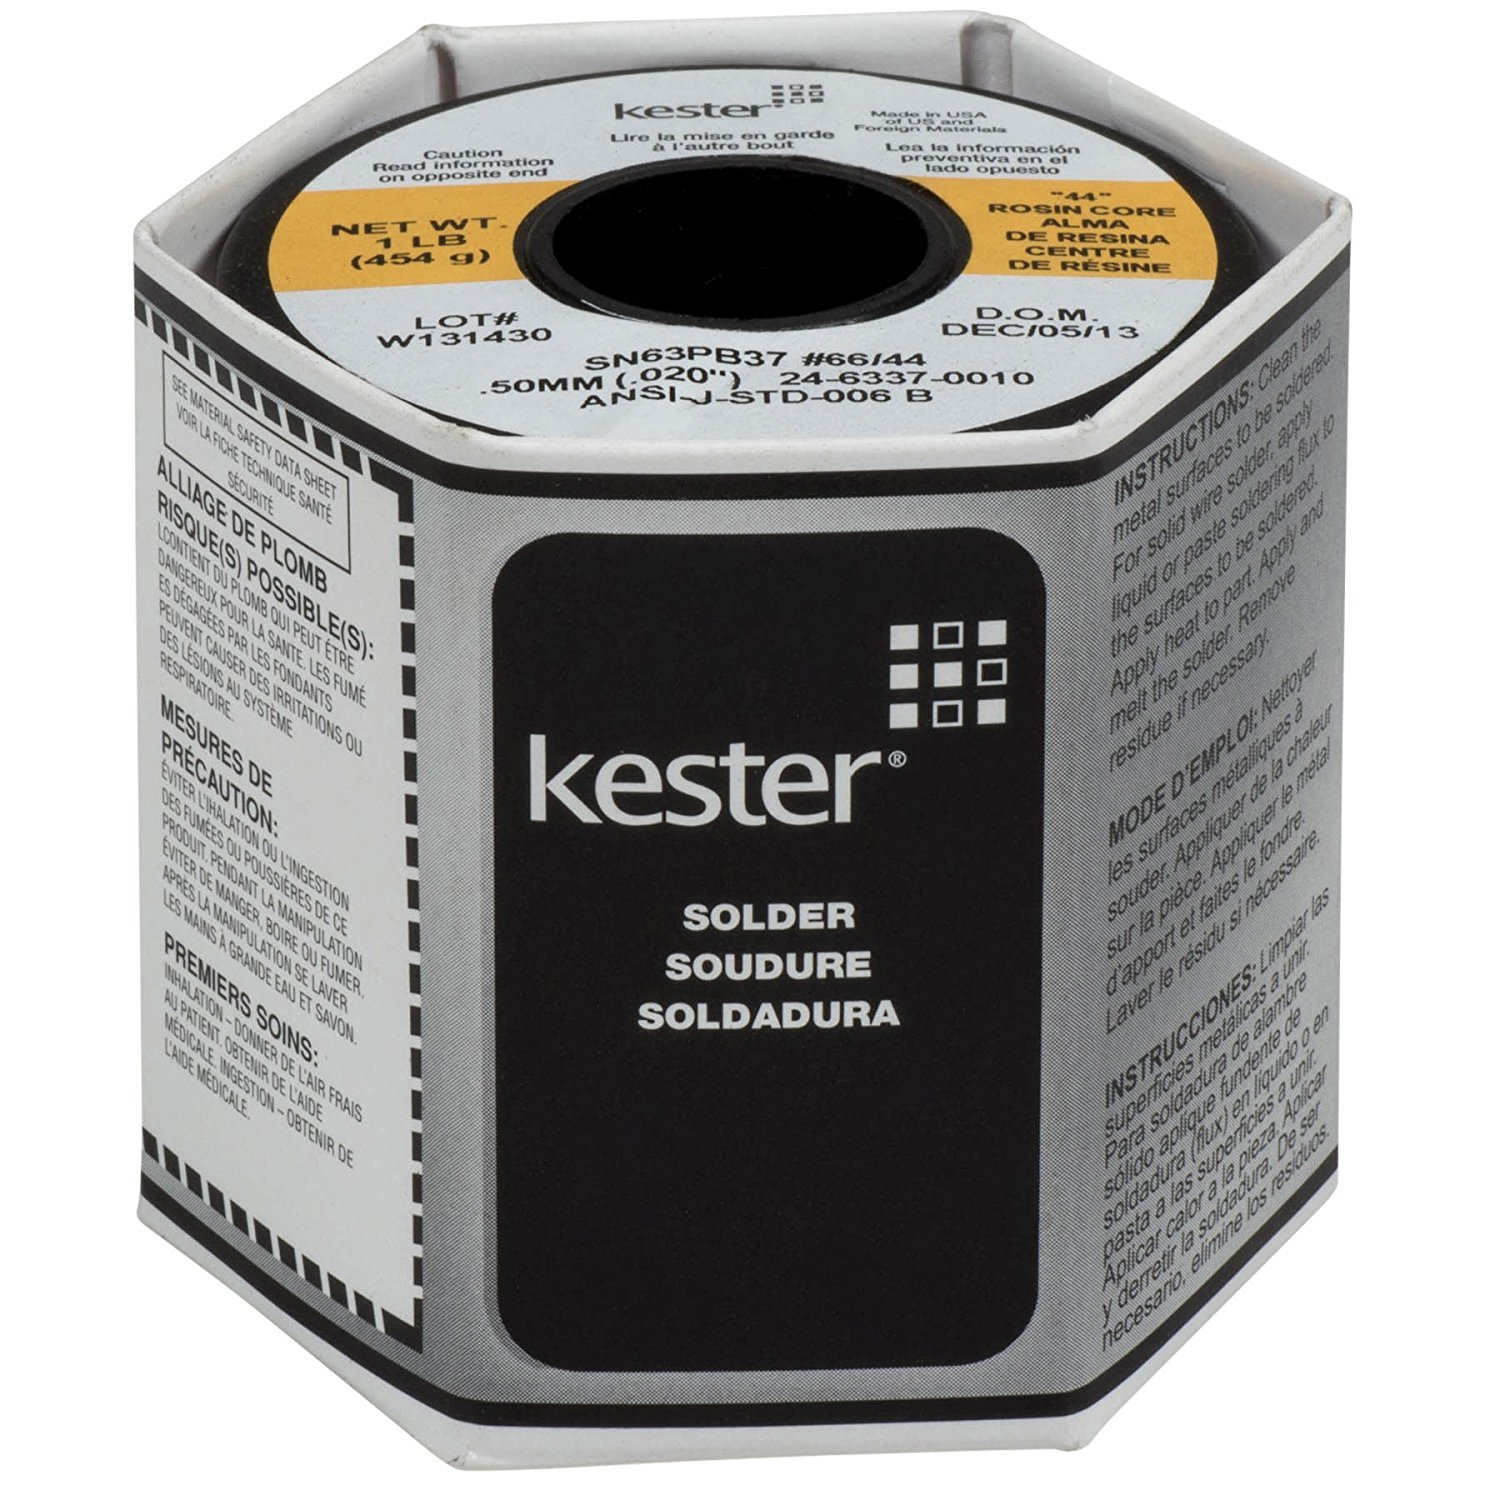 Kester 24-6337-0010 44 Rosin Core Solder 63/37 .020 1 lb. Spool by Kester